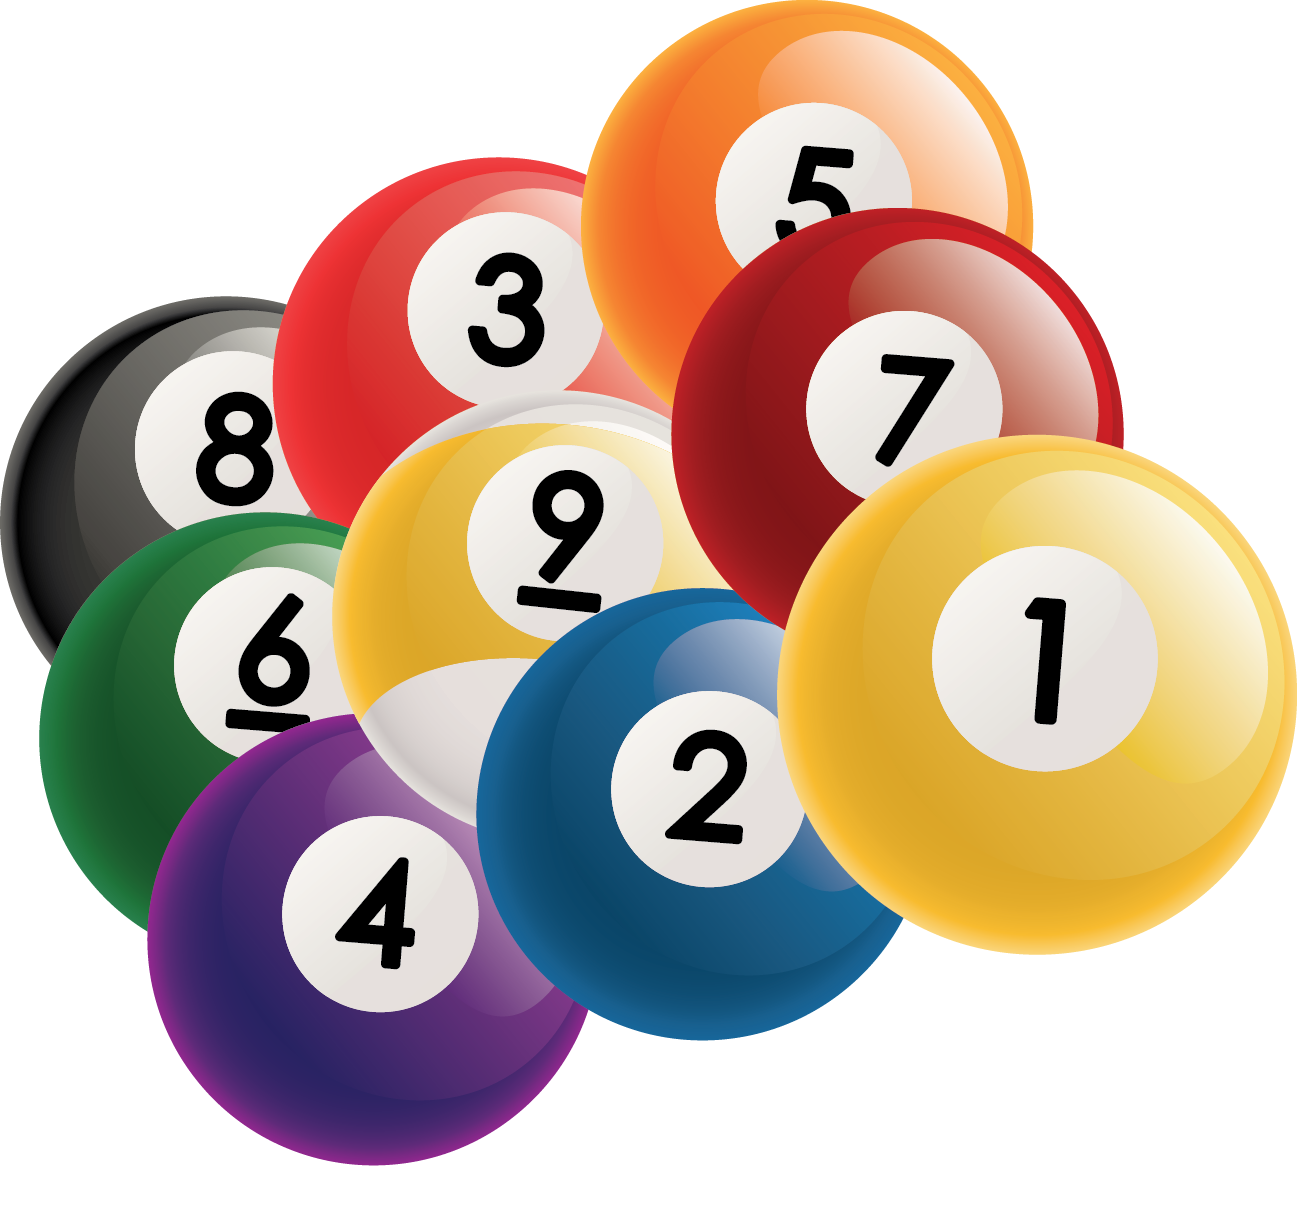 picture freeuse library Home page my cms. Billiards clipart pool game.